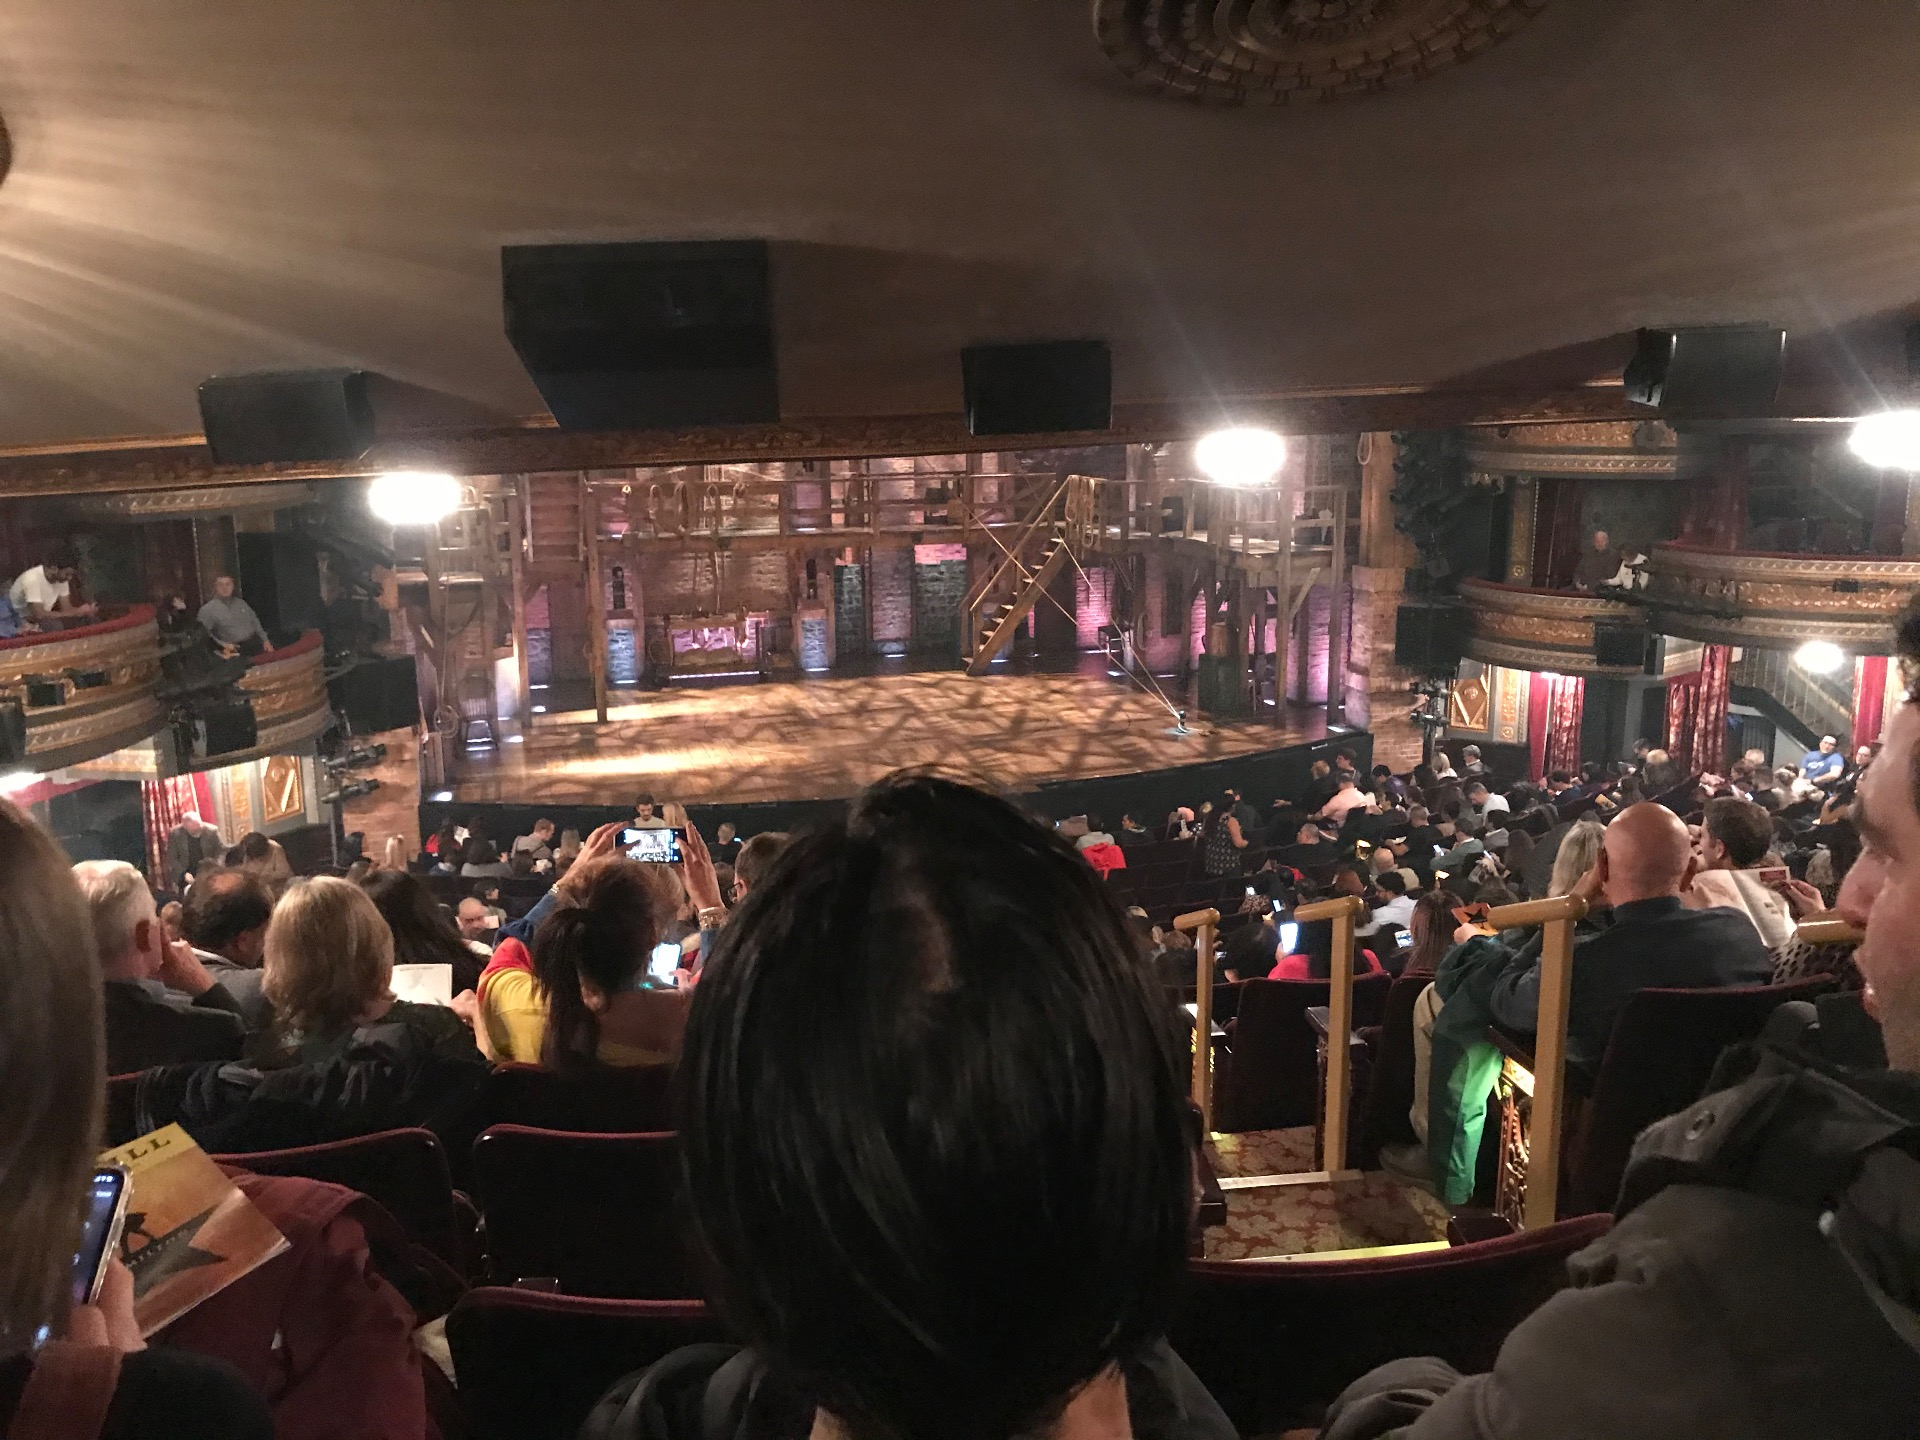 Richard Rodgers Theatre Section Orchestra L Row W Seat 1